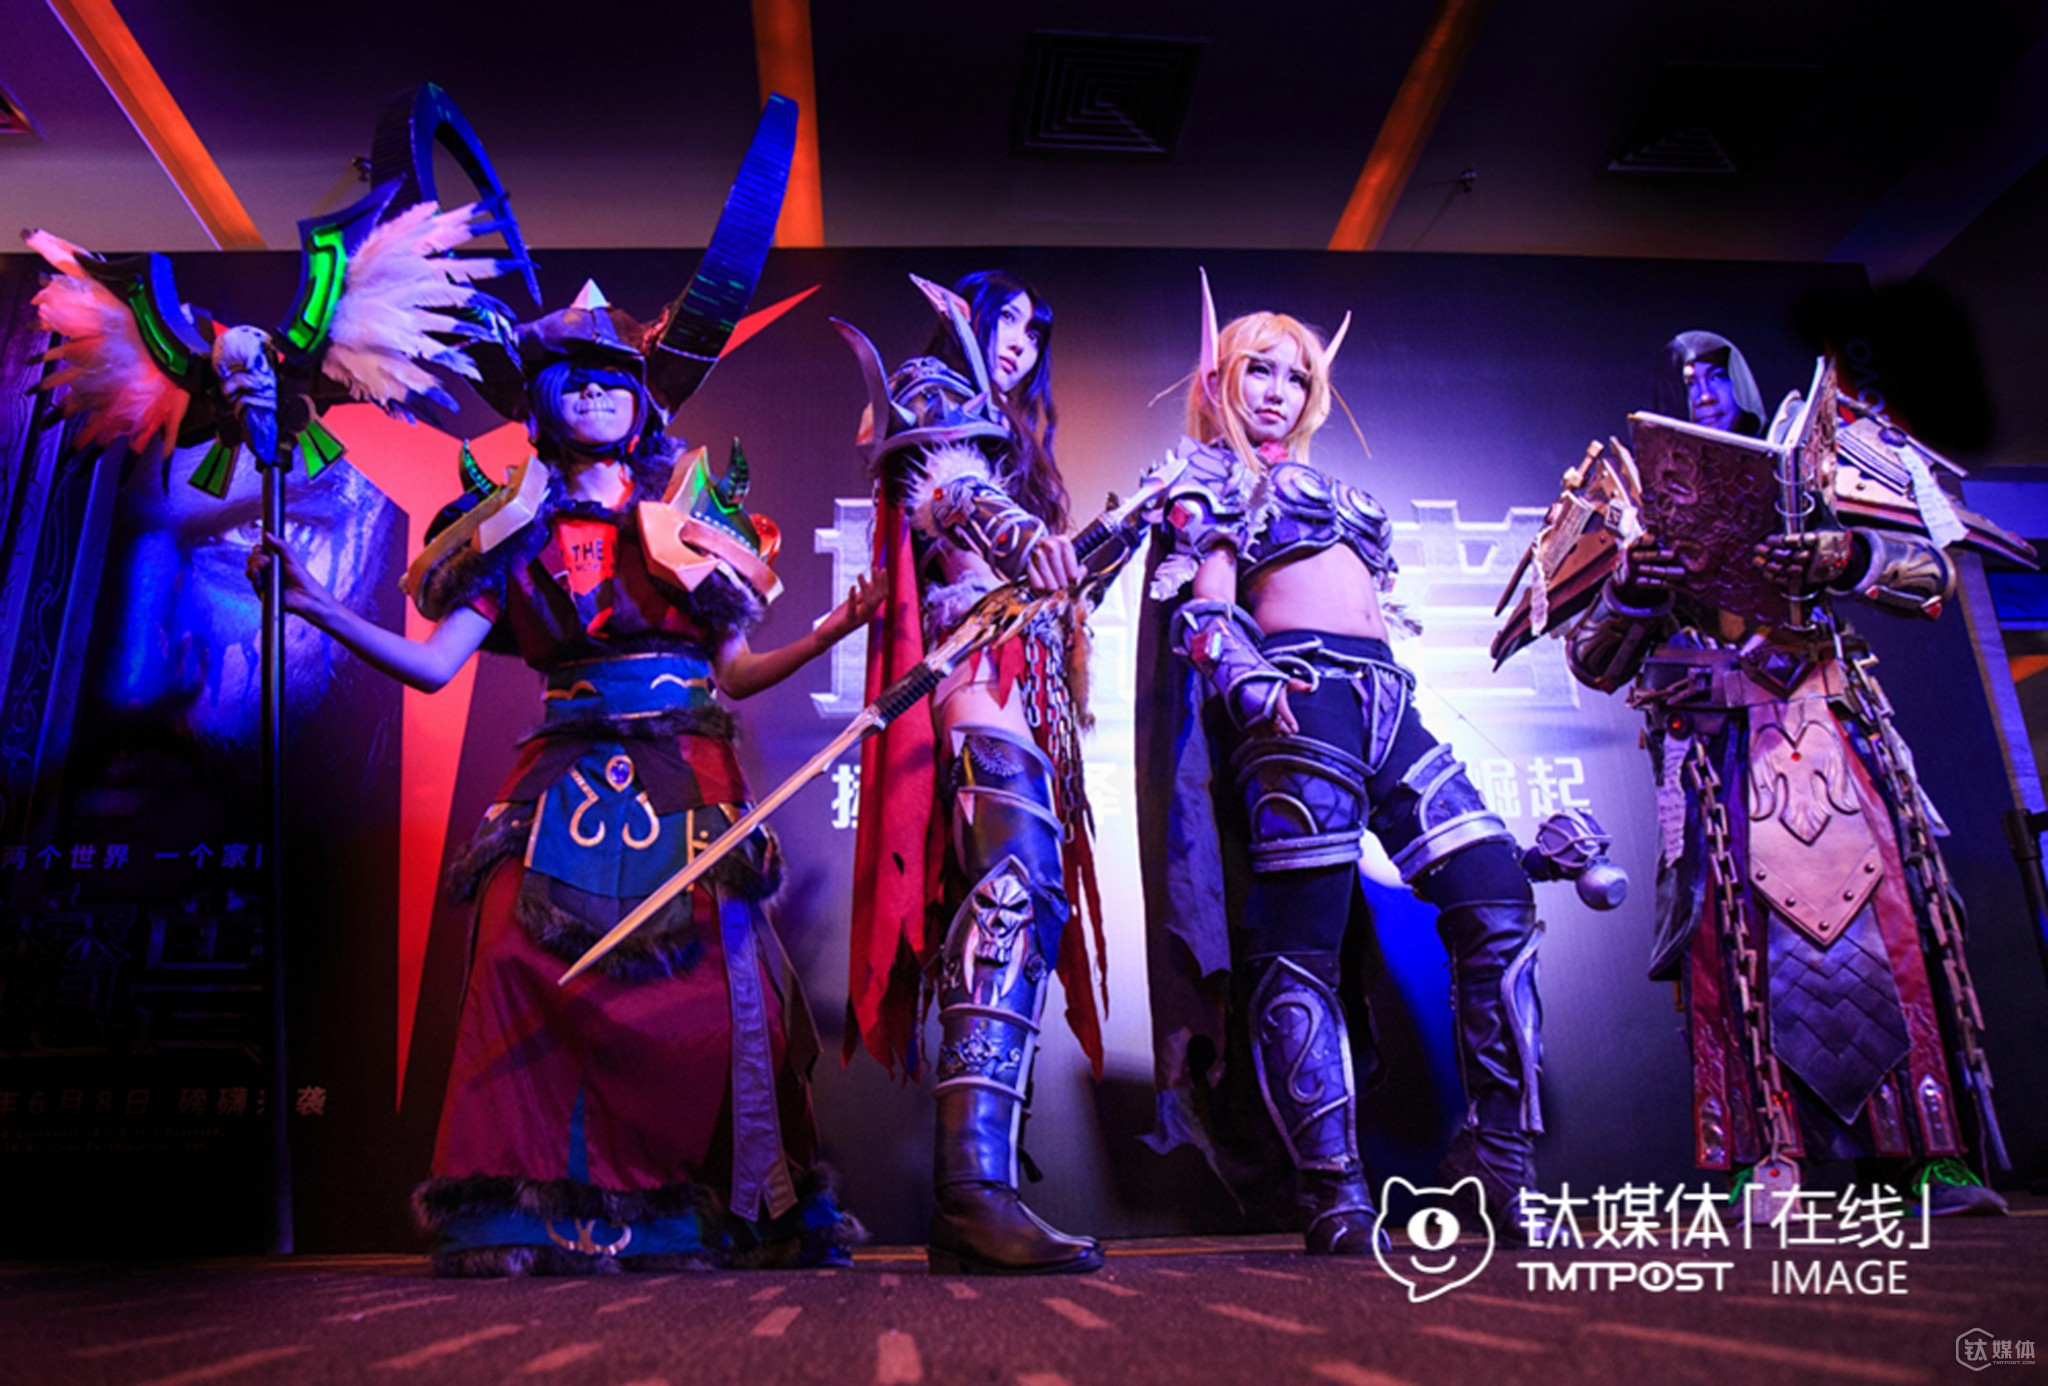 Four professional cosers were play onstage for the premiere of World of Warcraft film at Wanda Film Theatre. They could earn over RMB 1,000 each every day. There are lots of opportunities like this, and they are often invited to premiere events of blockbuster commercial films.